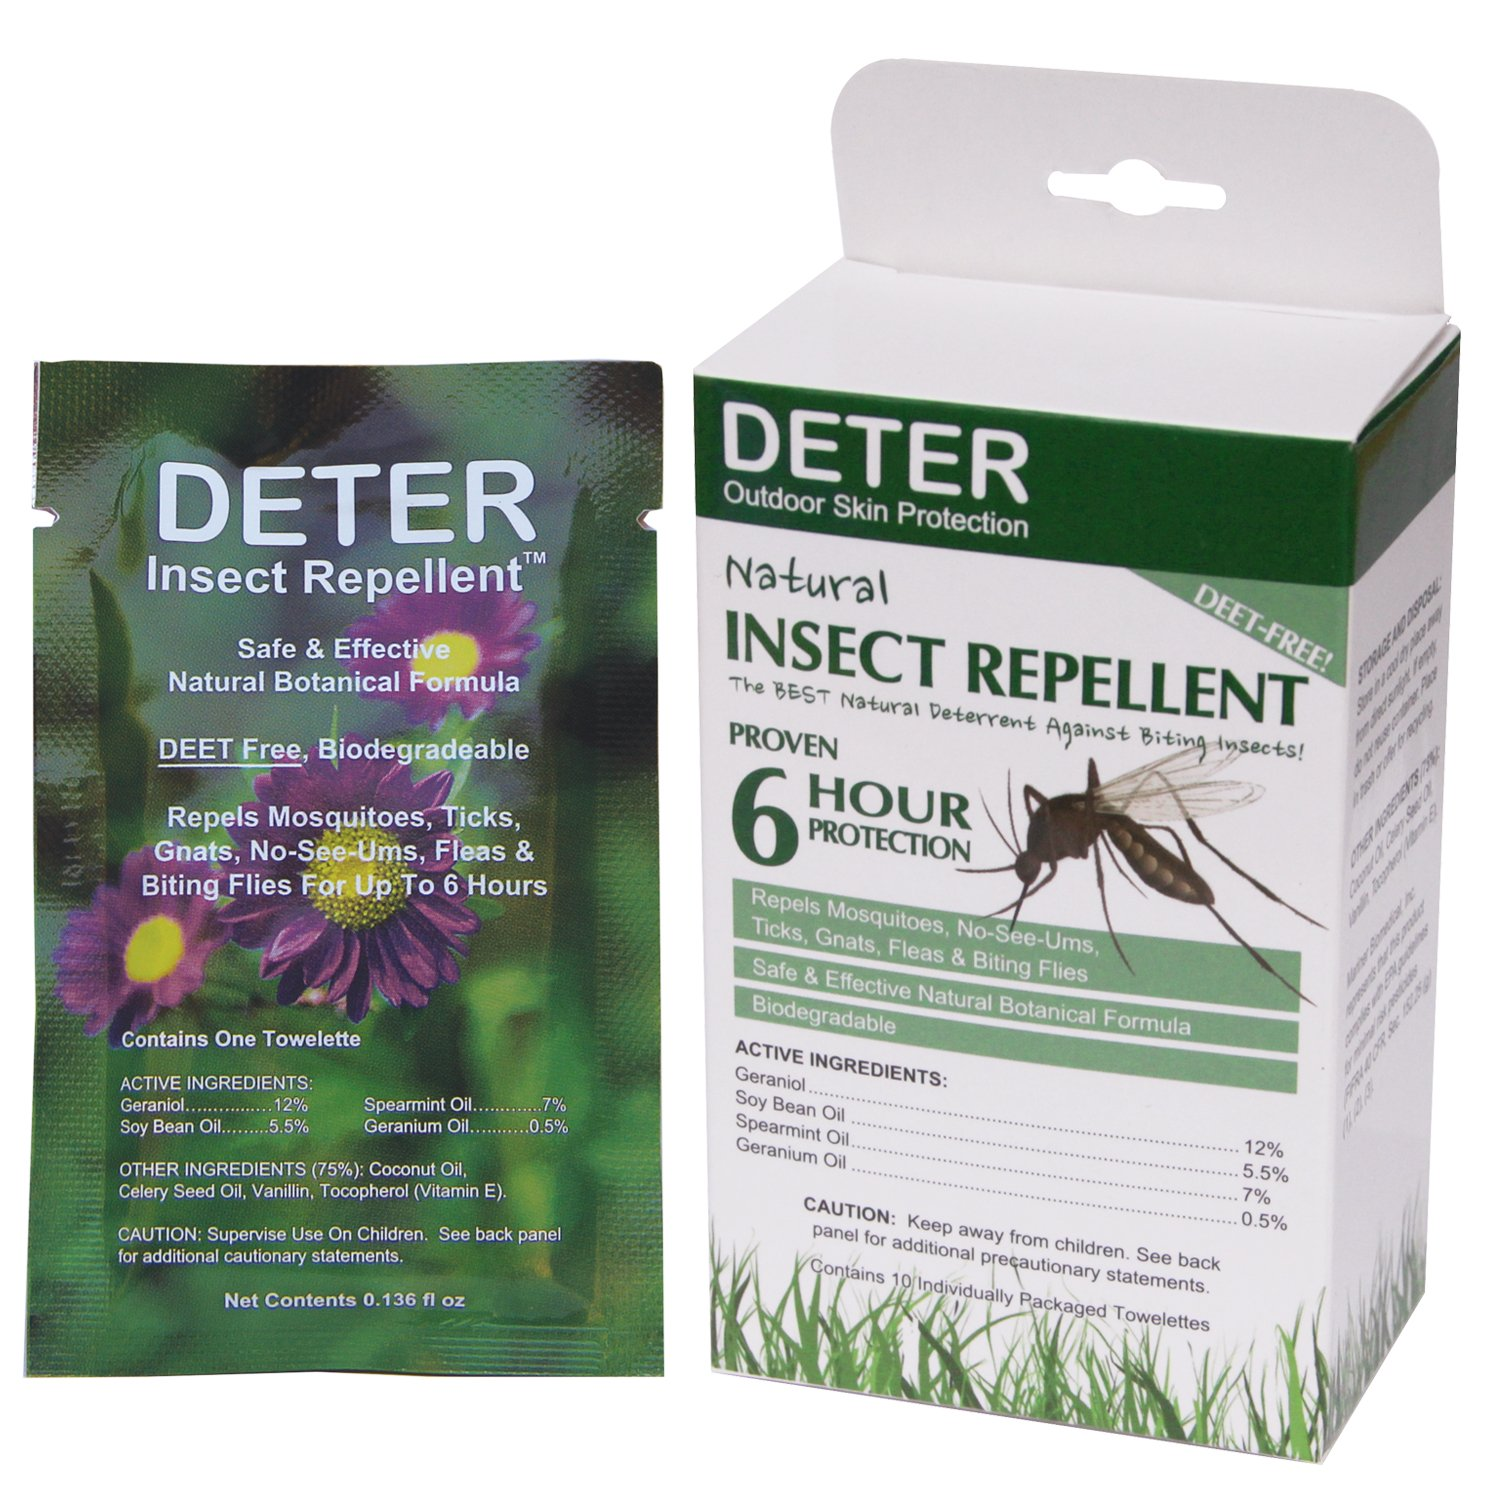 Deter Natural Insect Repellent Wipes 10 Towelettes by Deter: Amazon.co.uk: Sports & Outdoors